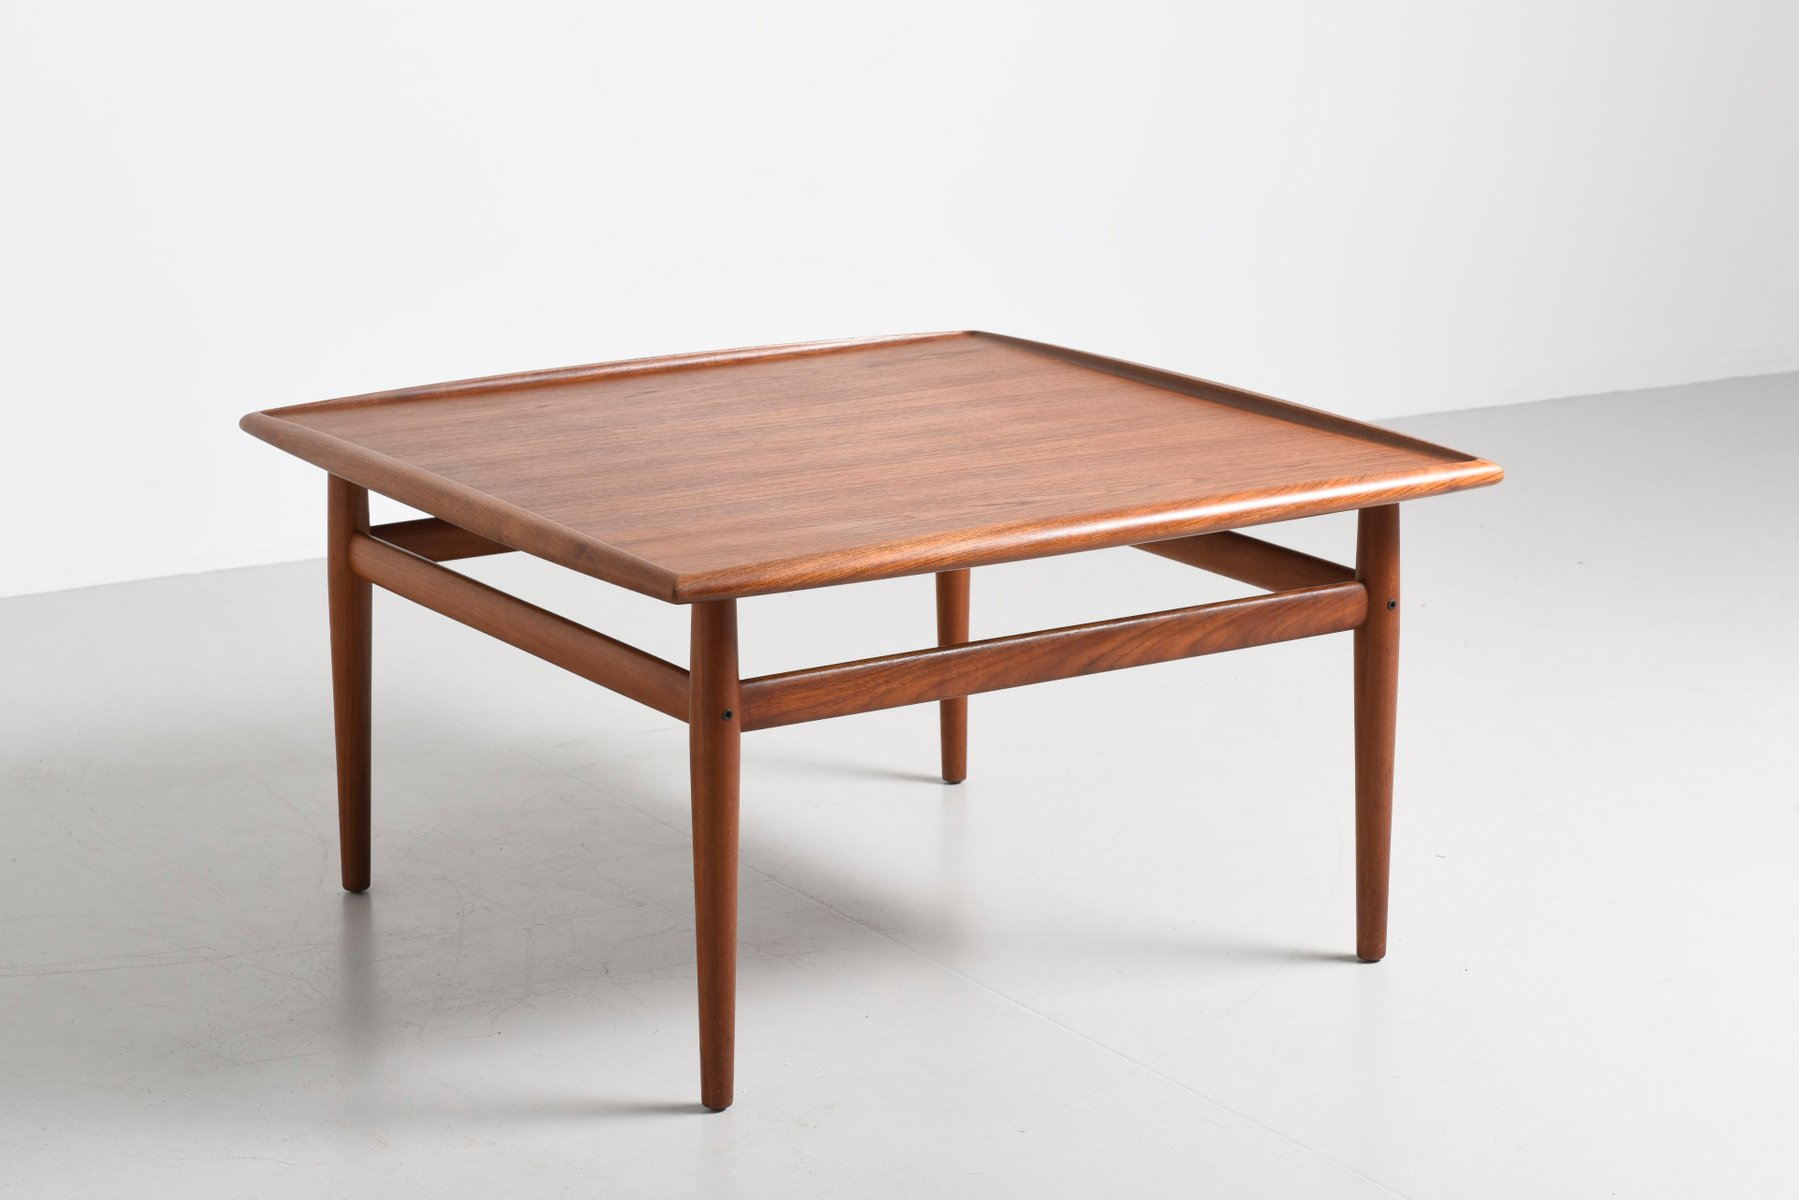 Vintage Coffee Table By Grete Jalk For France And Søn For Sale At Pamono